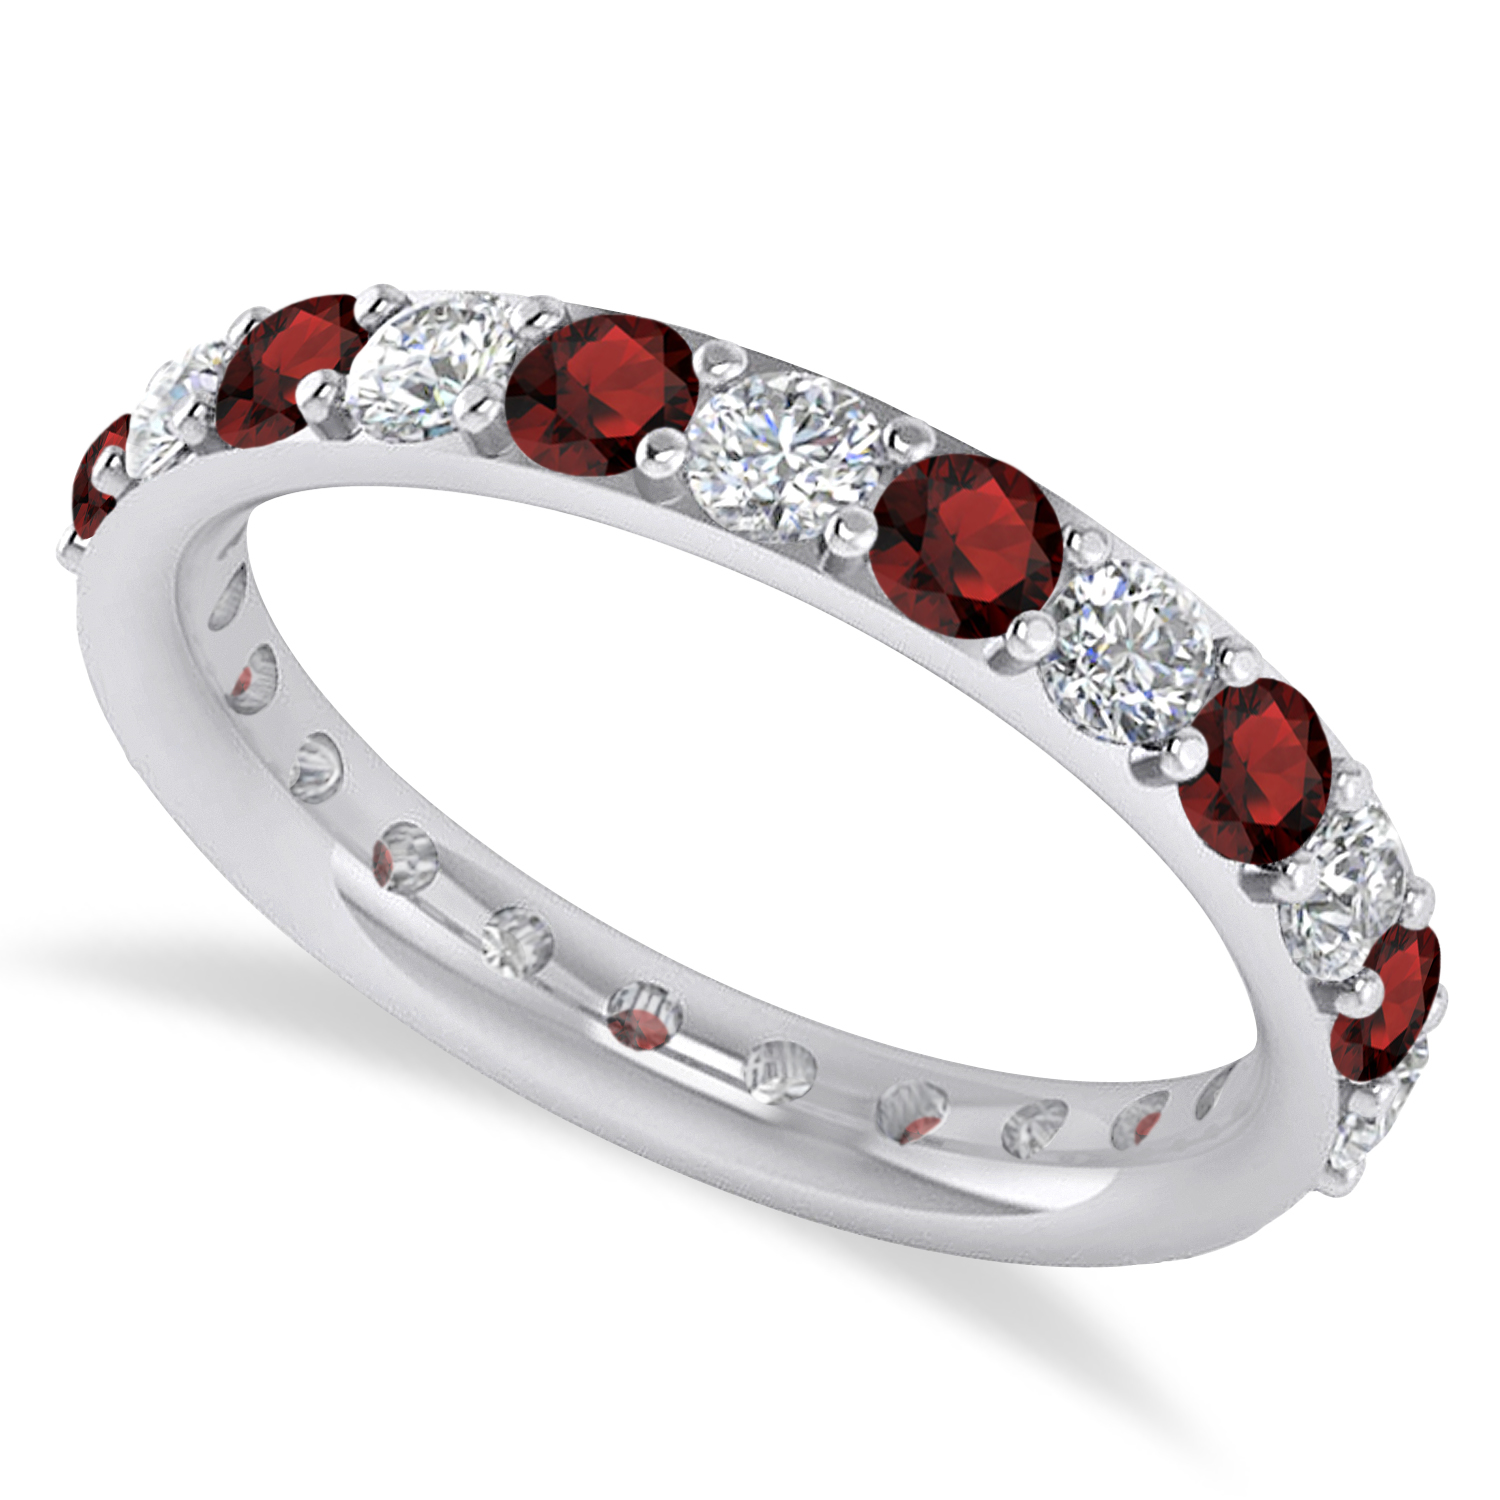 Garnet Ring Bands: Diamond & Garnet Eternity Wedding Band 14k White Gold 1